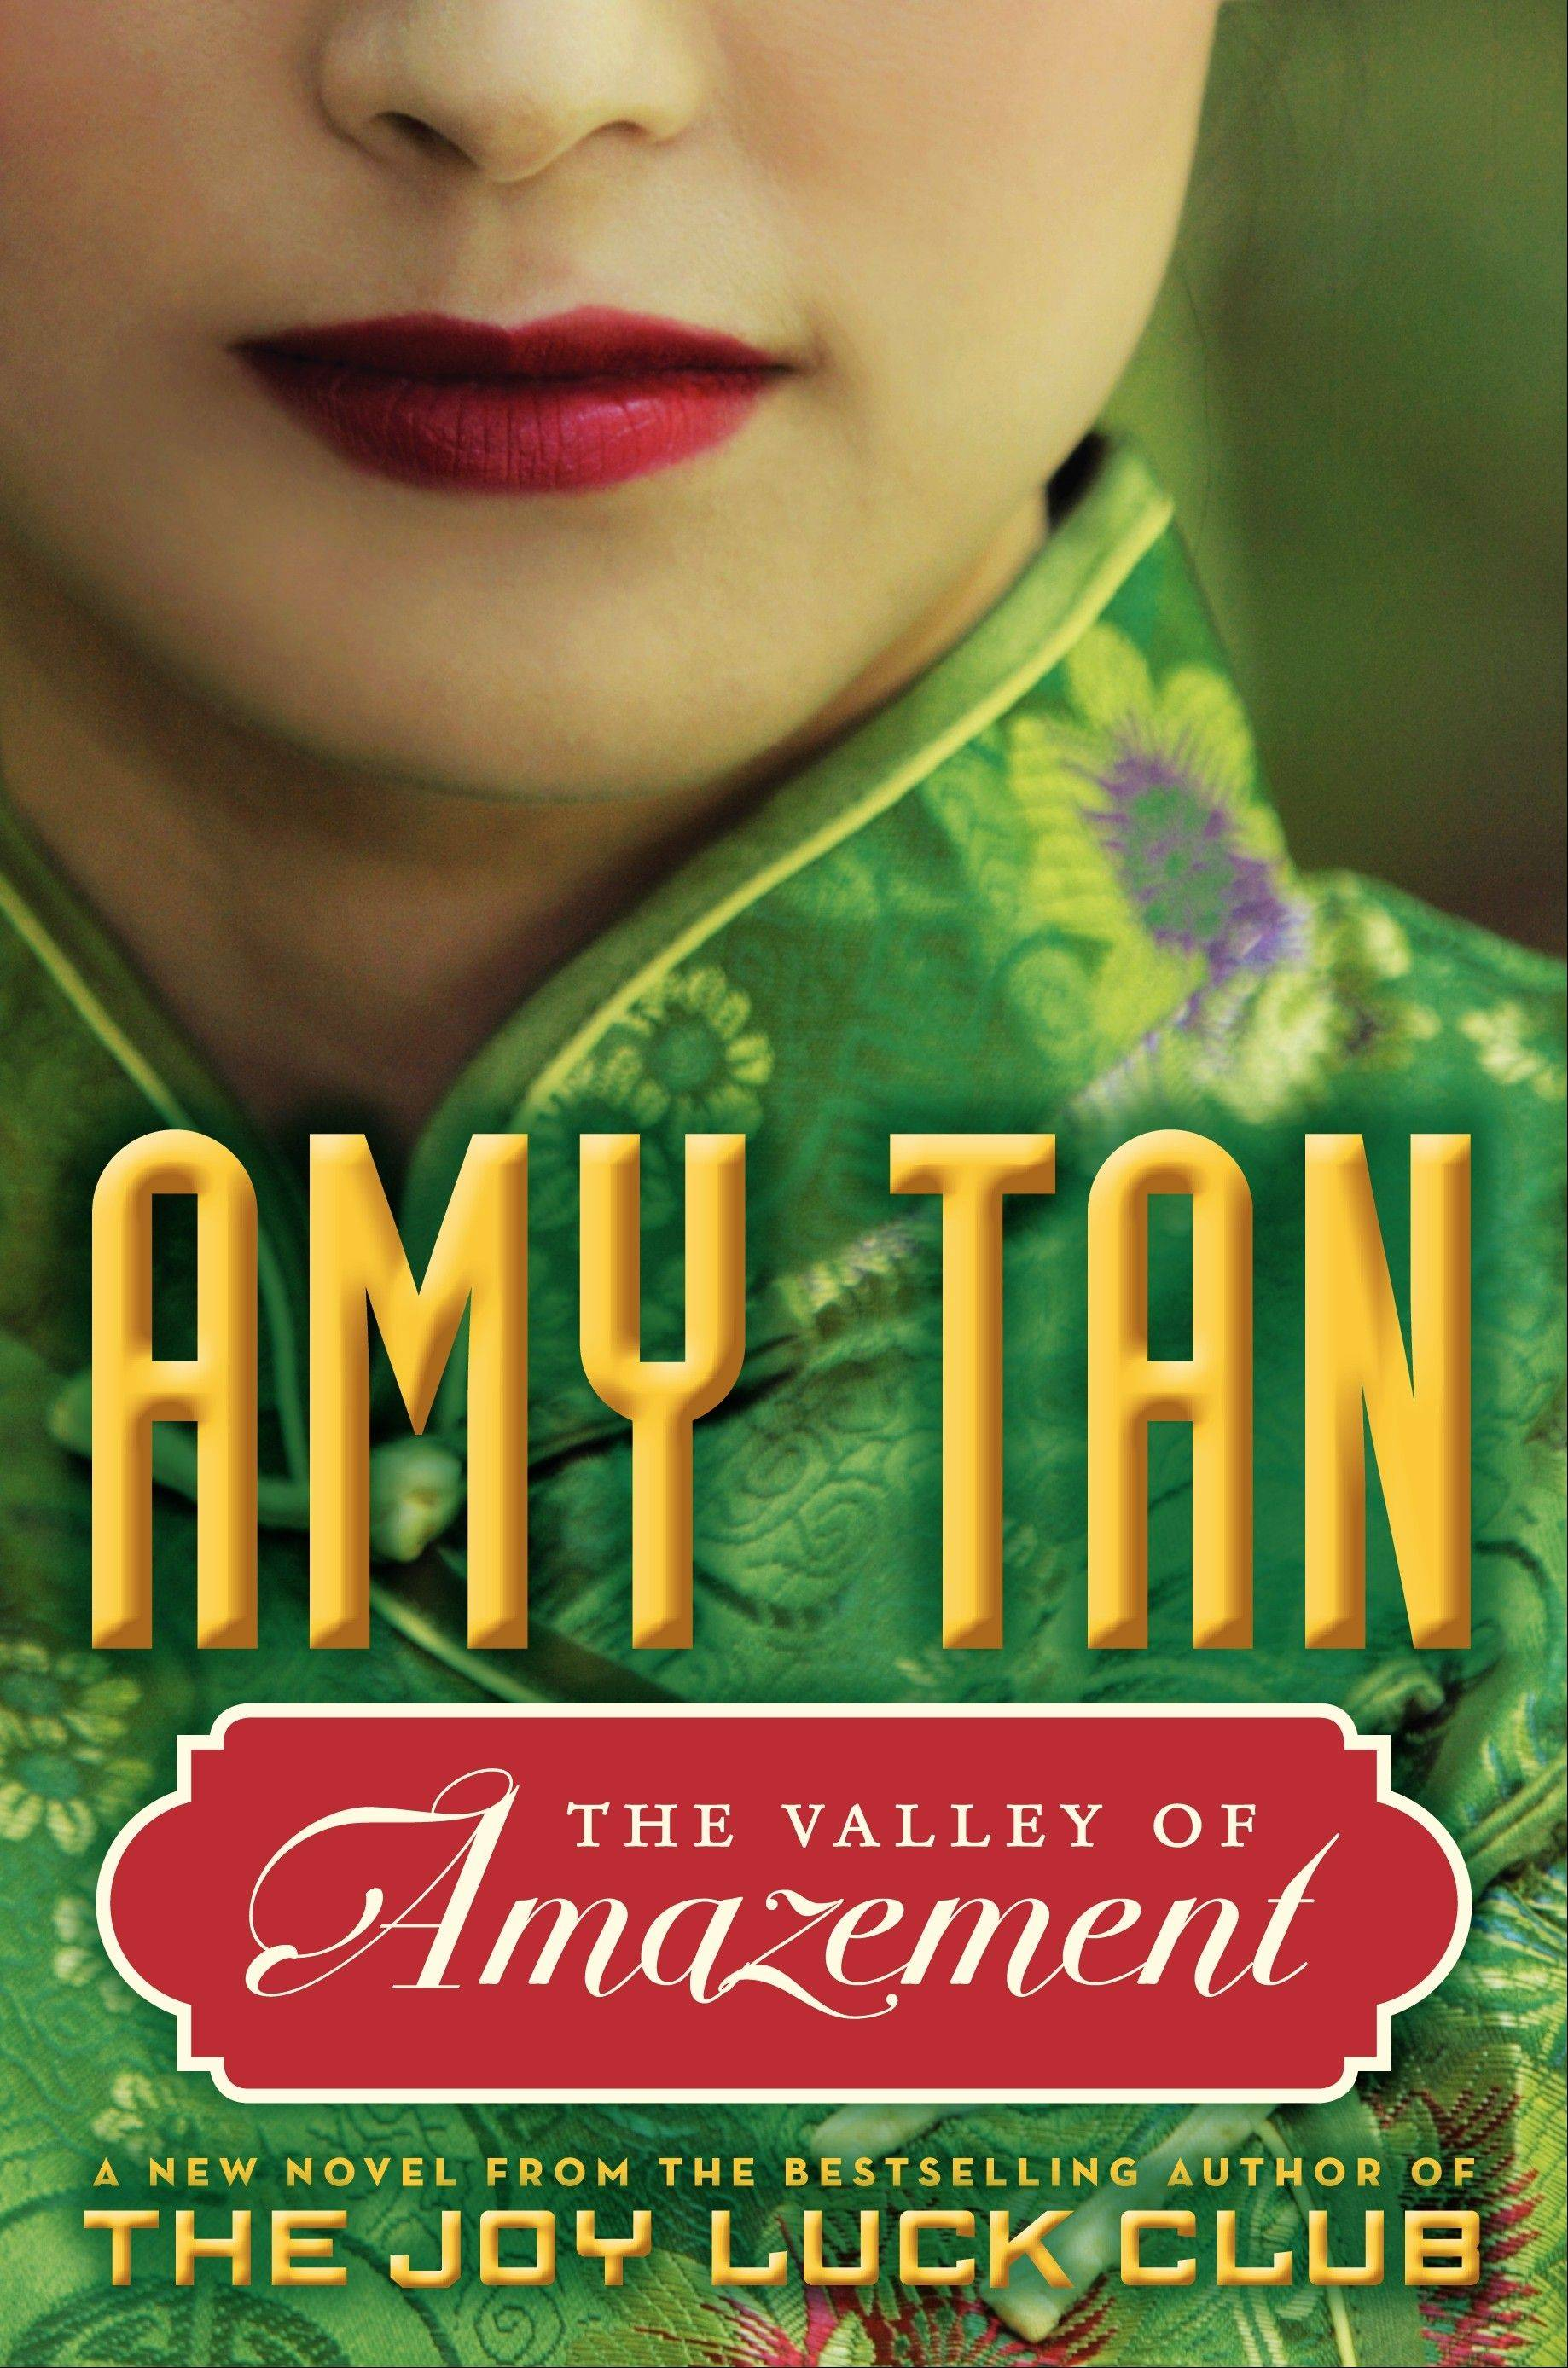 """The Valley of Amazement"" is the latest book by Amy Tan."